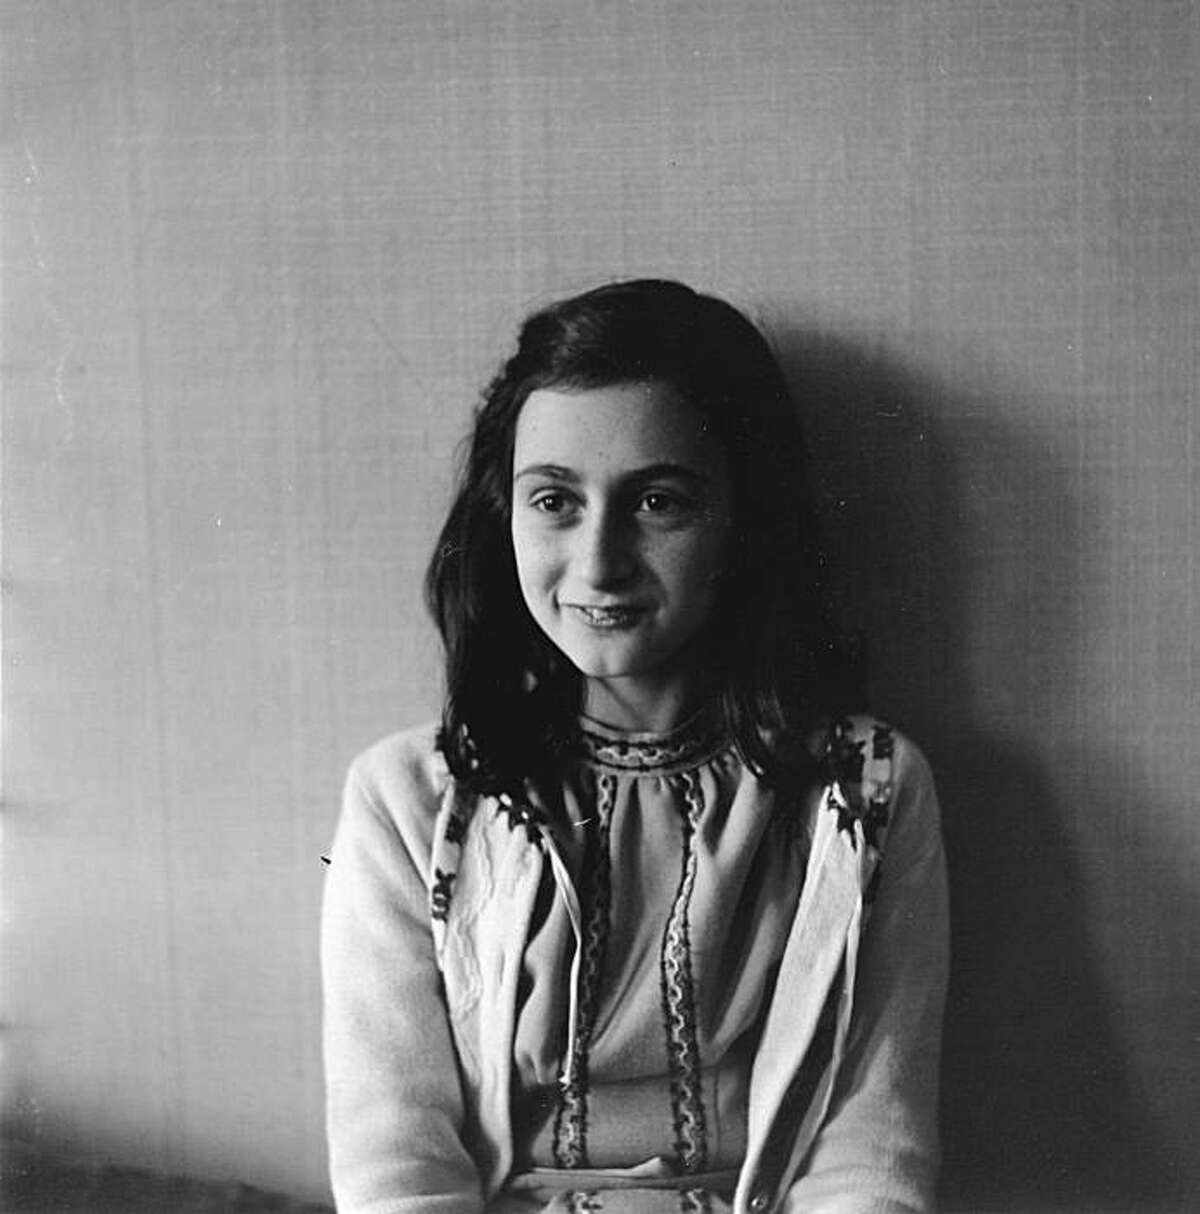 Anne Frank poses in 1941 in this photo made available by Anne Frank House in Amsterdam, Netherlands, Thursday, June 11, 2009. The Anne Frank House museum says it will permanently exhibit her diaries and other writings as part of activities commemorating the 80th anniversary of her birth on June 12, 1929. Frank died aged 15 in a concentration camp, but her posthumously published diary has made her a symbol of all Jews killed in World War II. (AP Photo/ Anne Frank House/ Frans Dupont, HO) ** ONE TIME USE ONLY ** NO SALES **